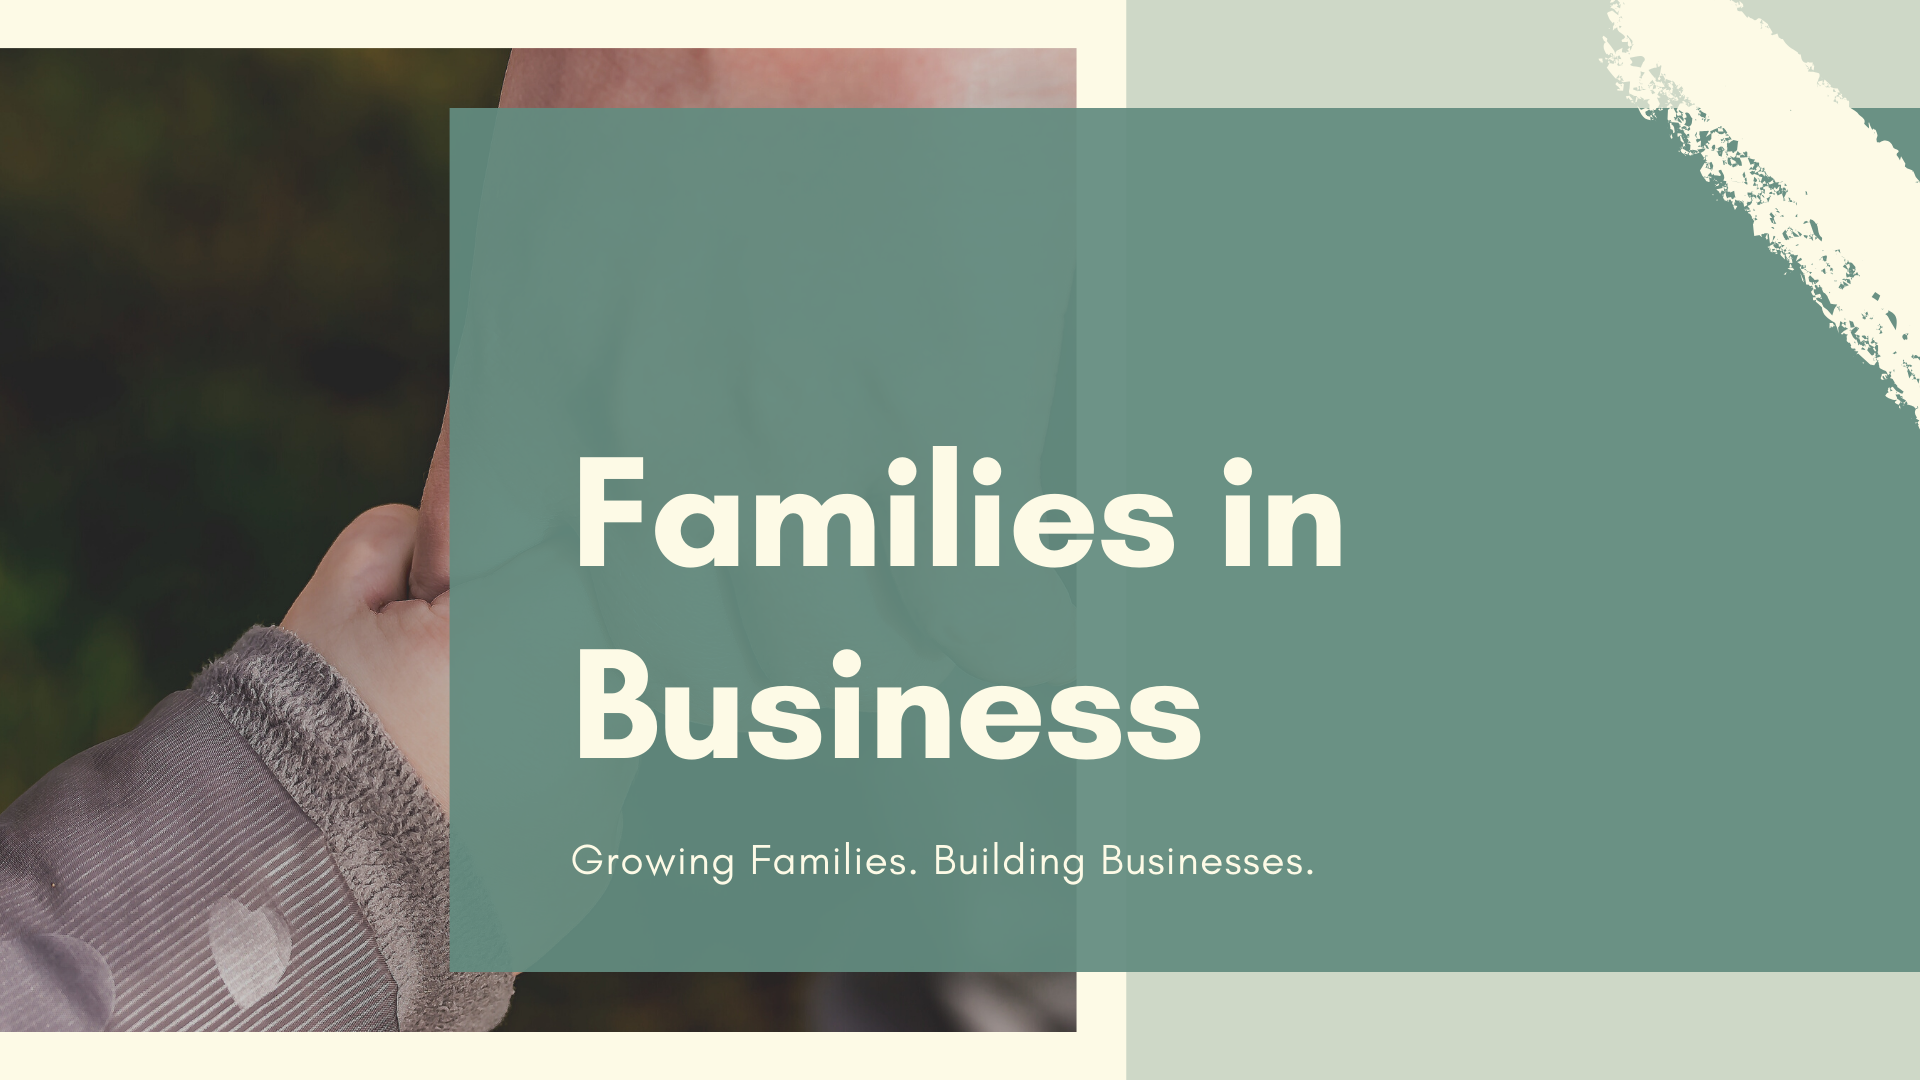 Families-in-Business-FB-Cover.png